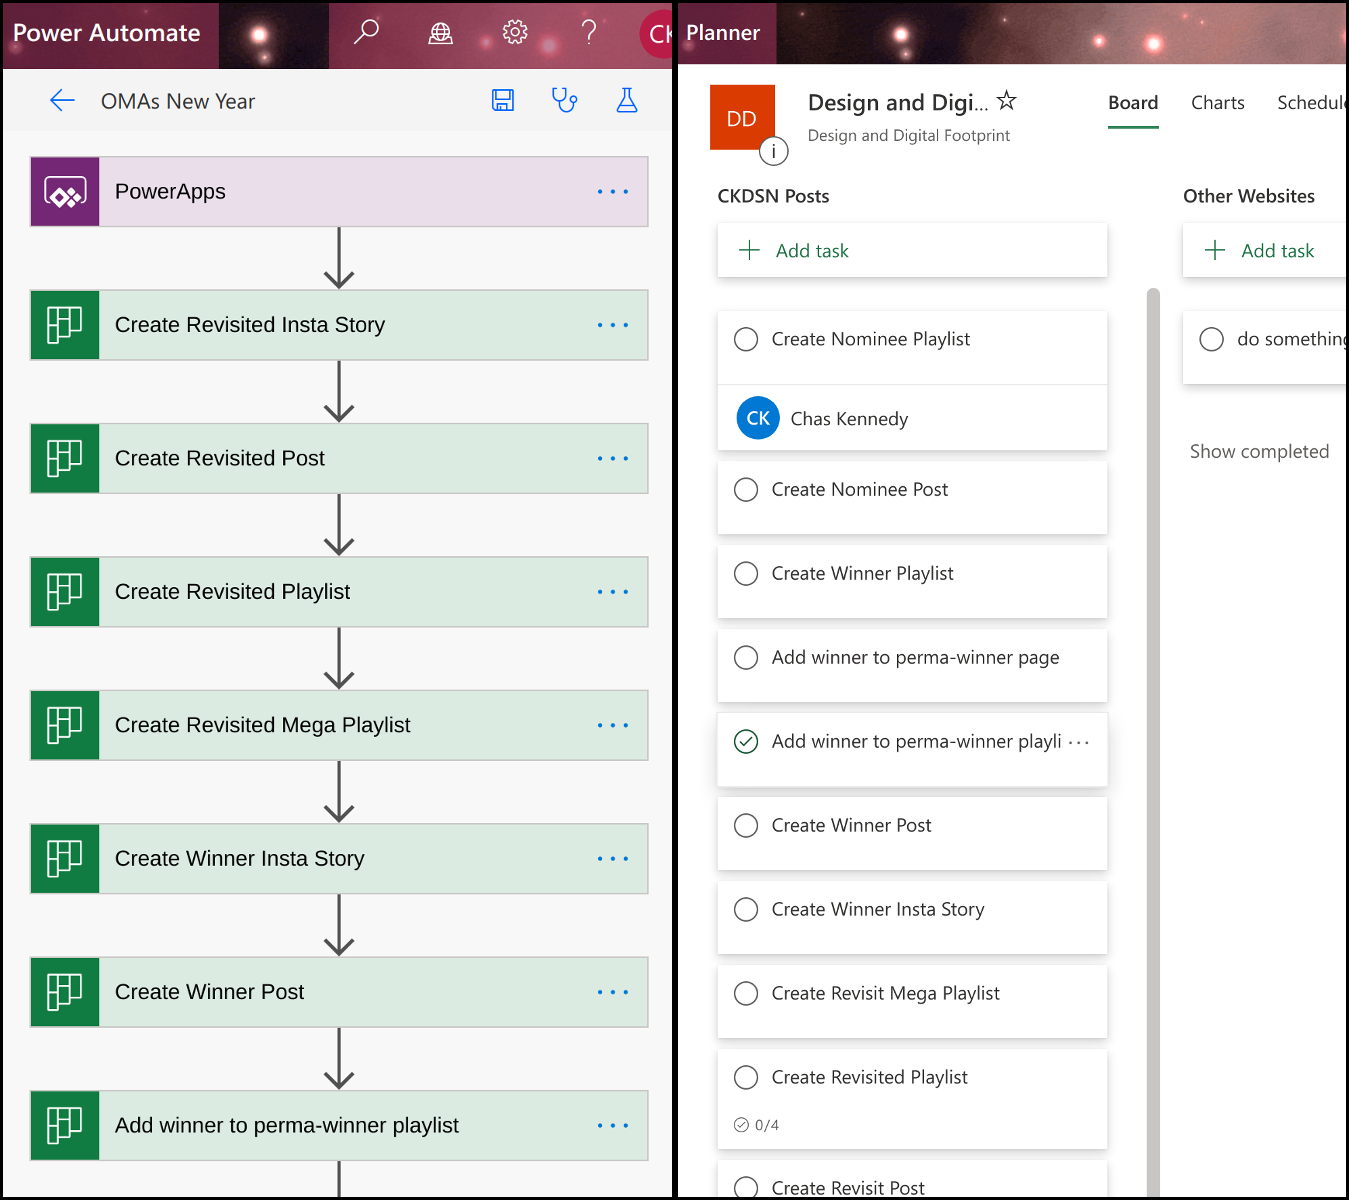 Automate-to-Planner